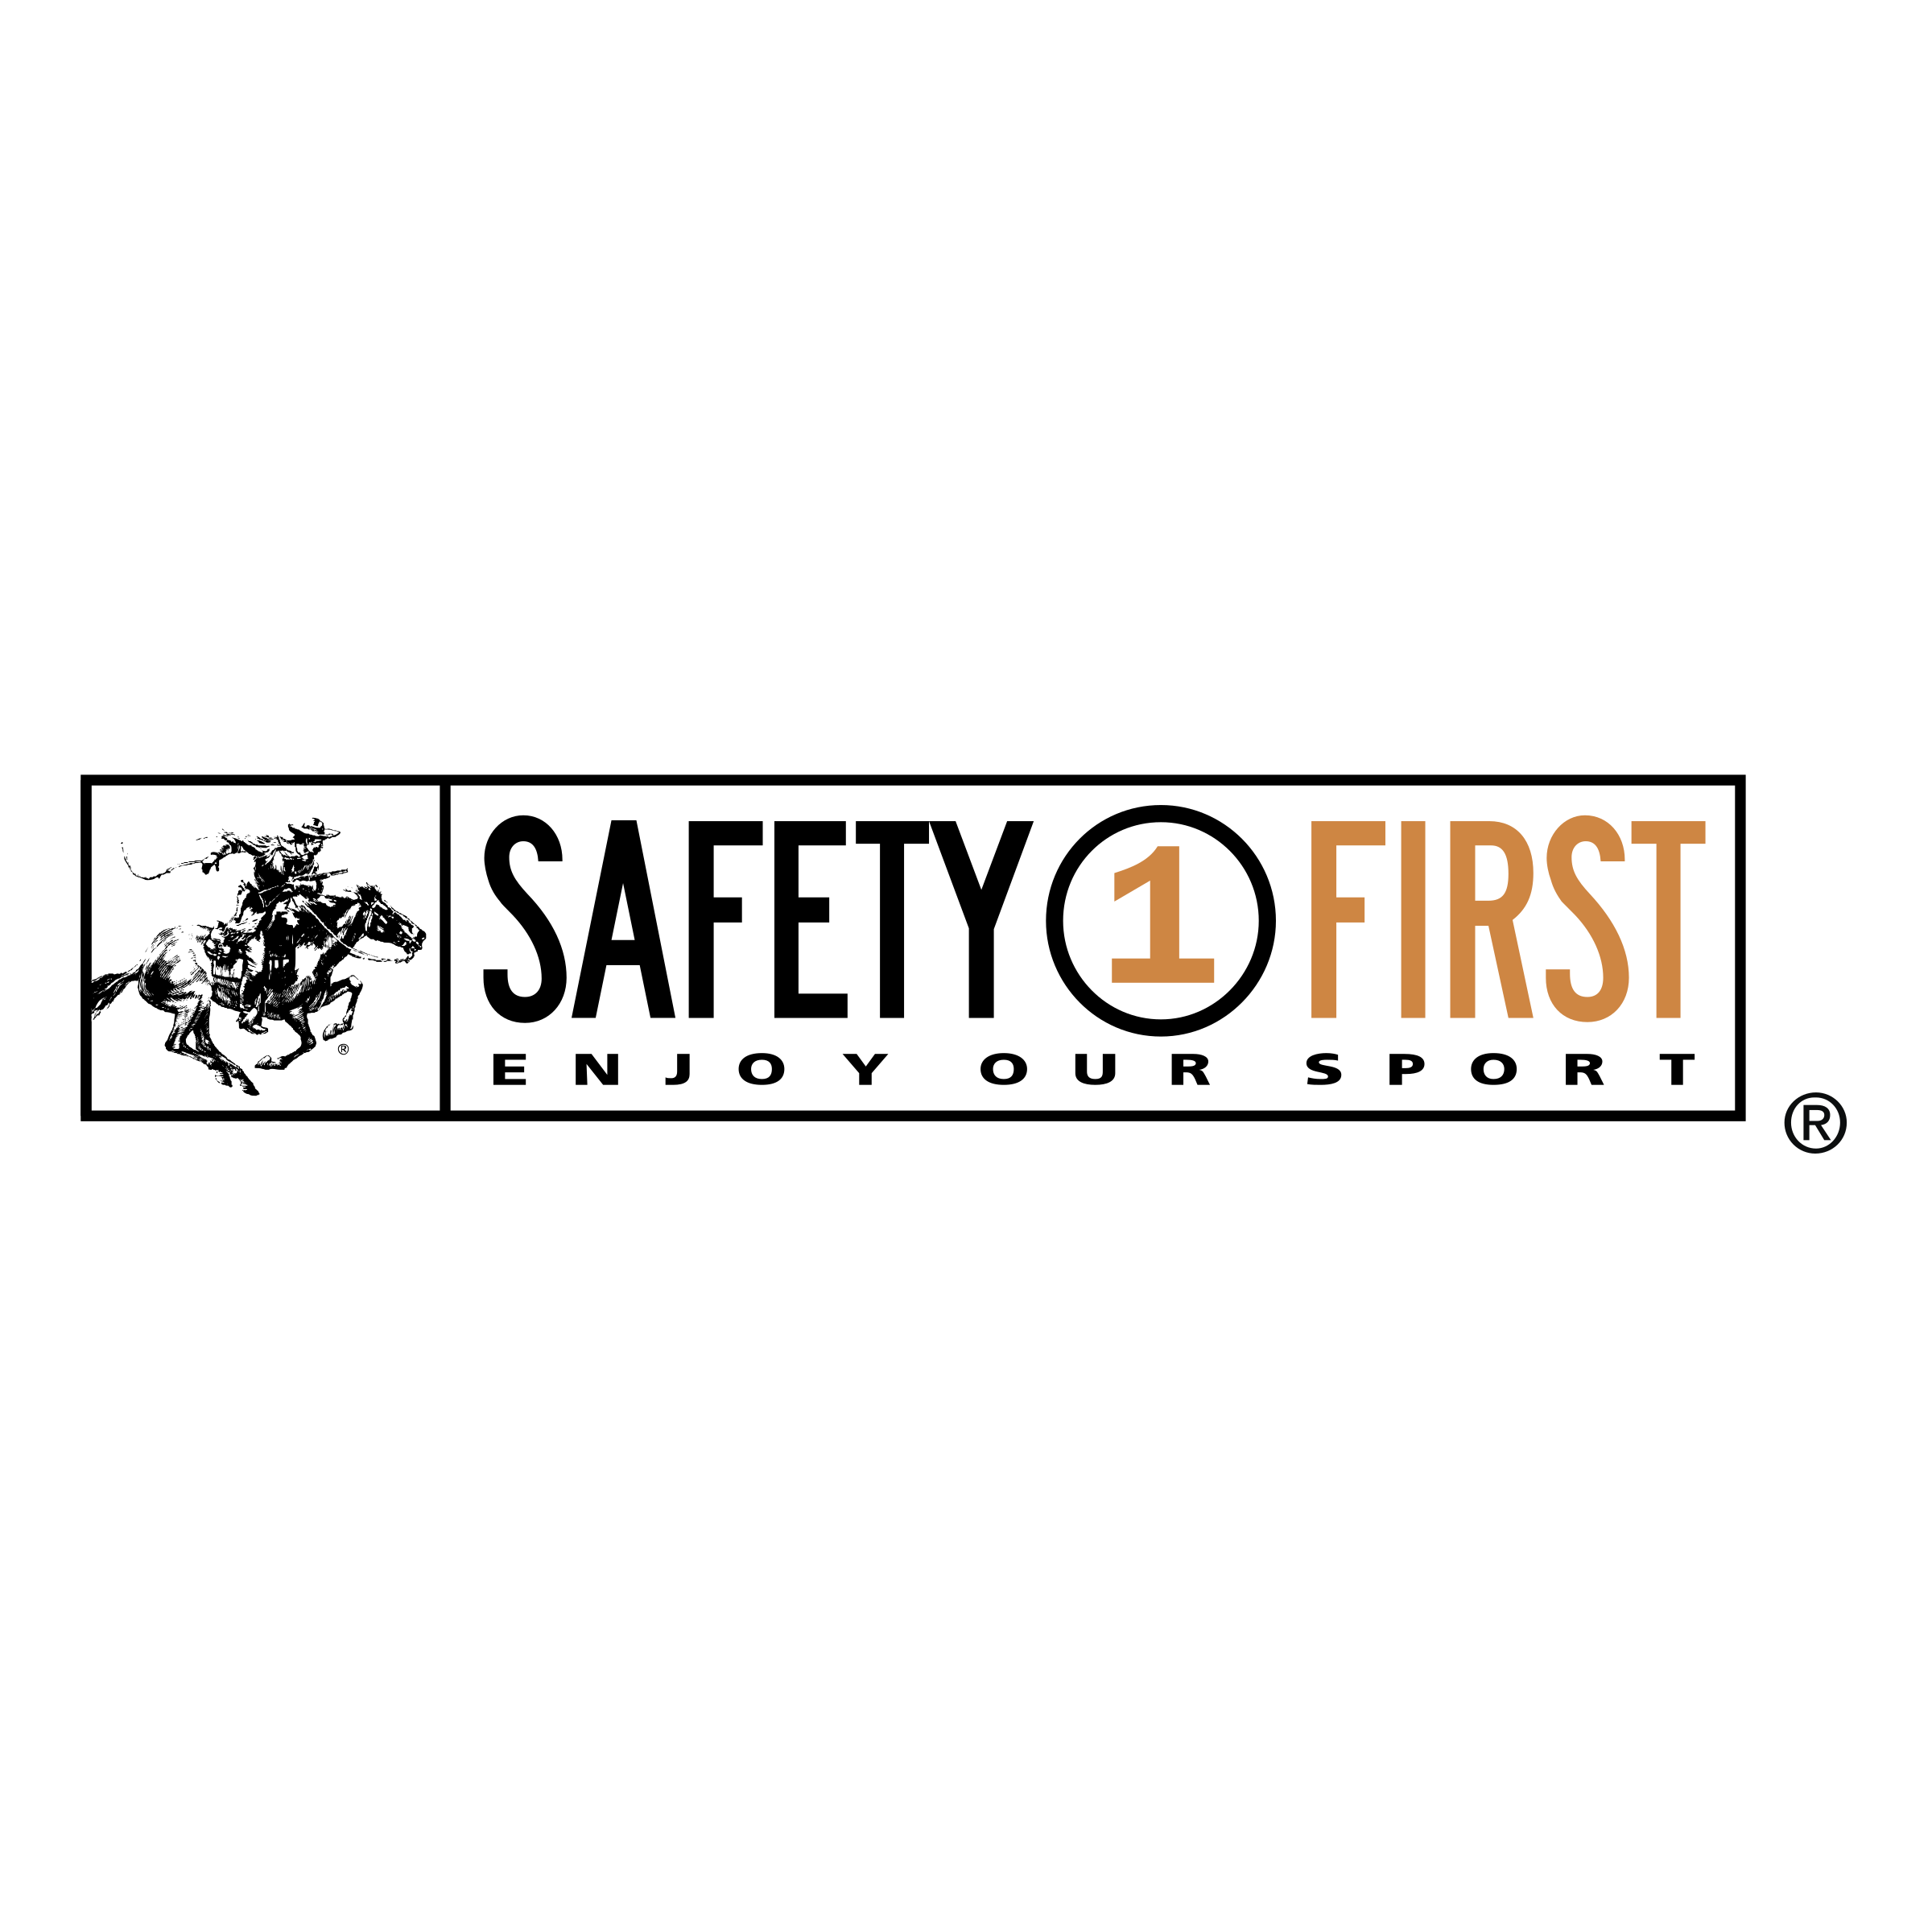 Safety First Logo Png Transparent Svg Vector Freebie Supply